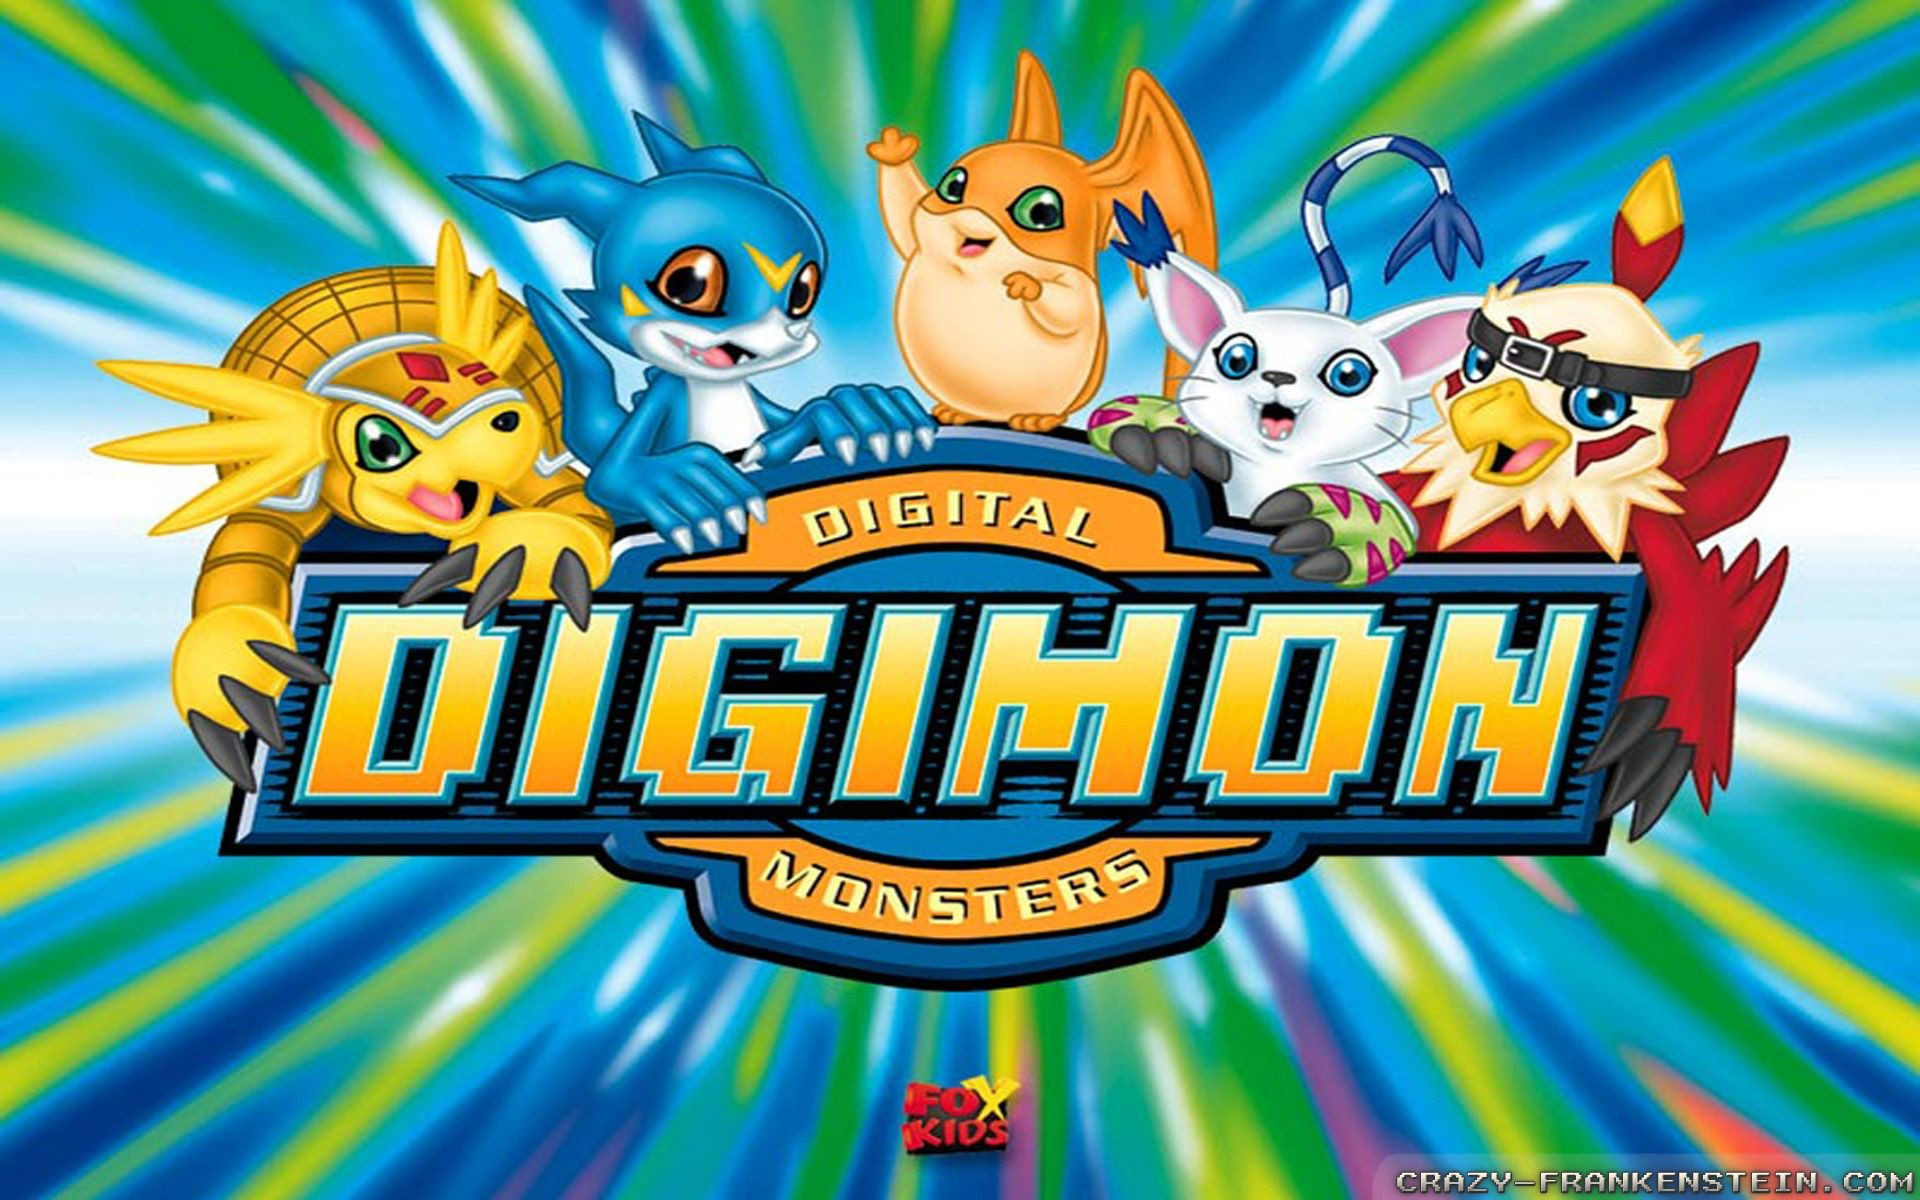 Res: 1920x1200, Digimon Wallpapers Wallpaper